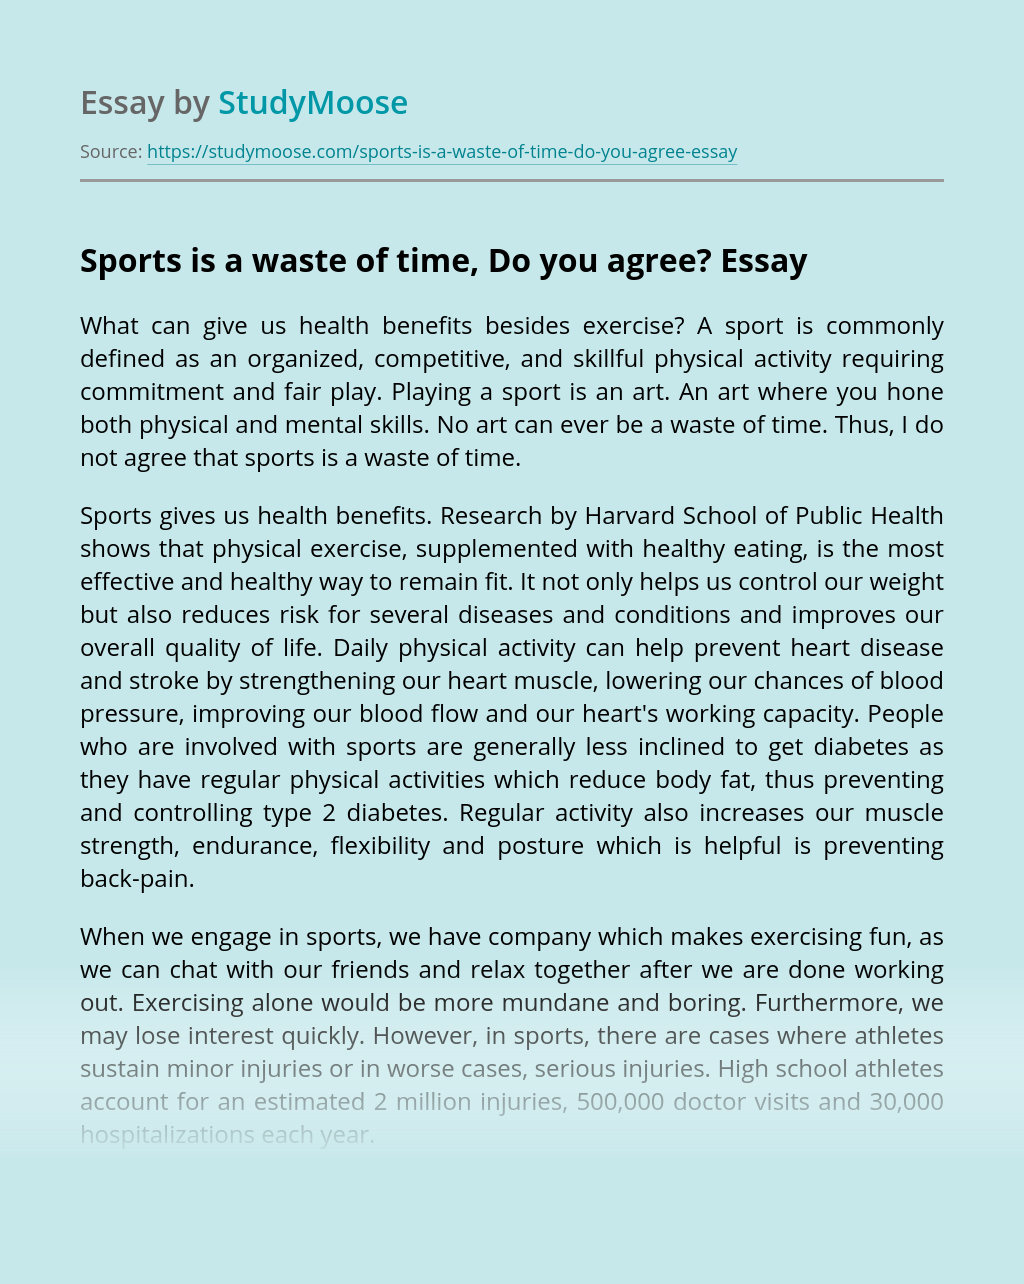 Sports is a waste of time, Do you agree?